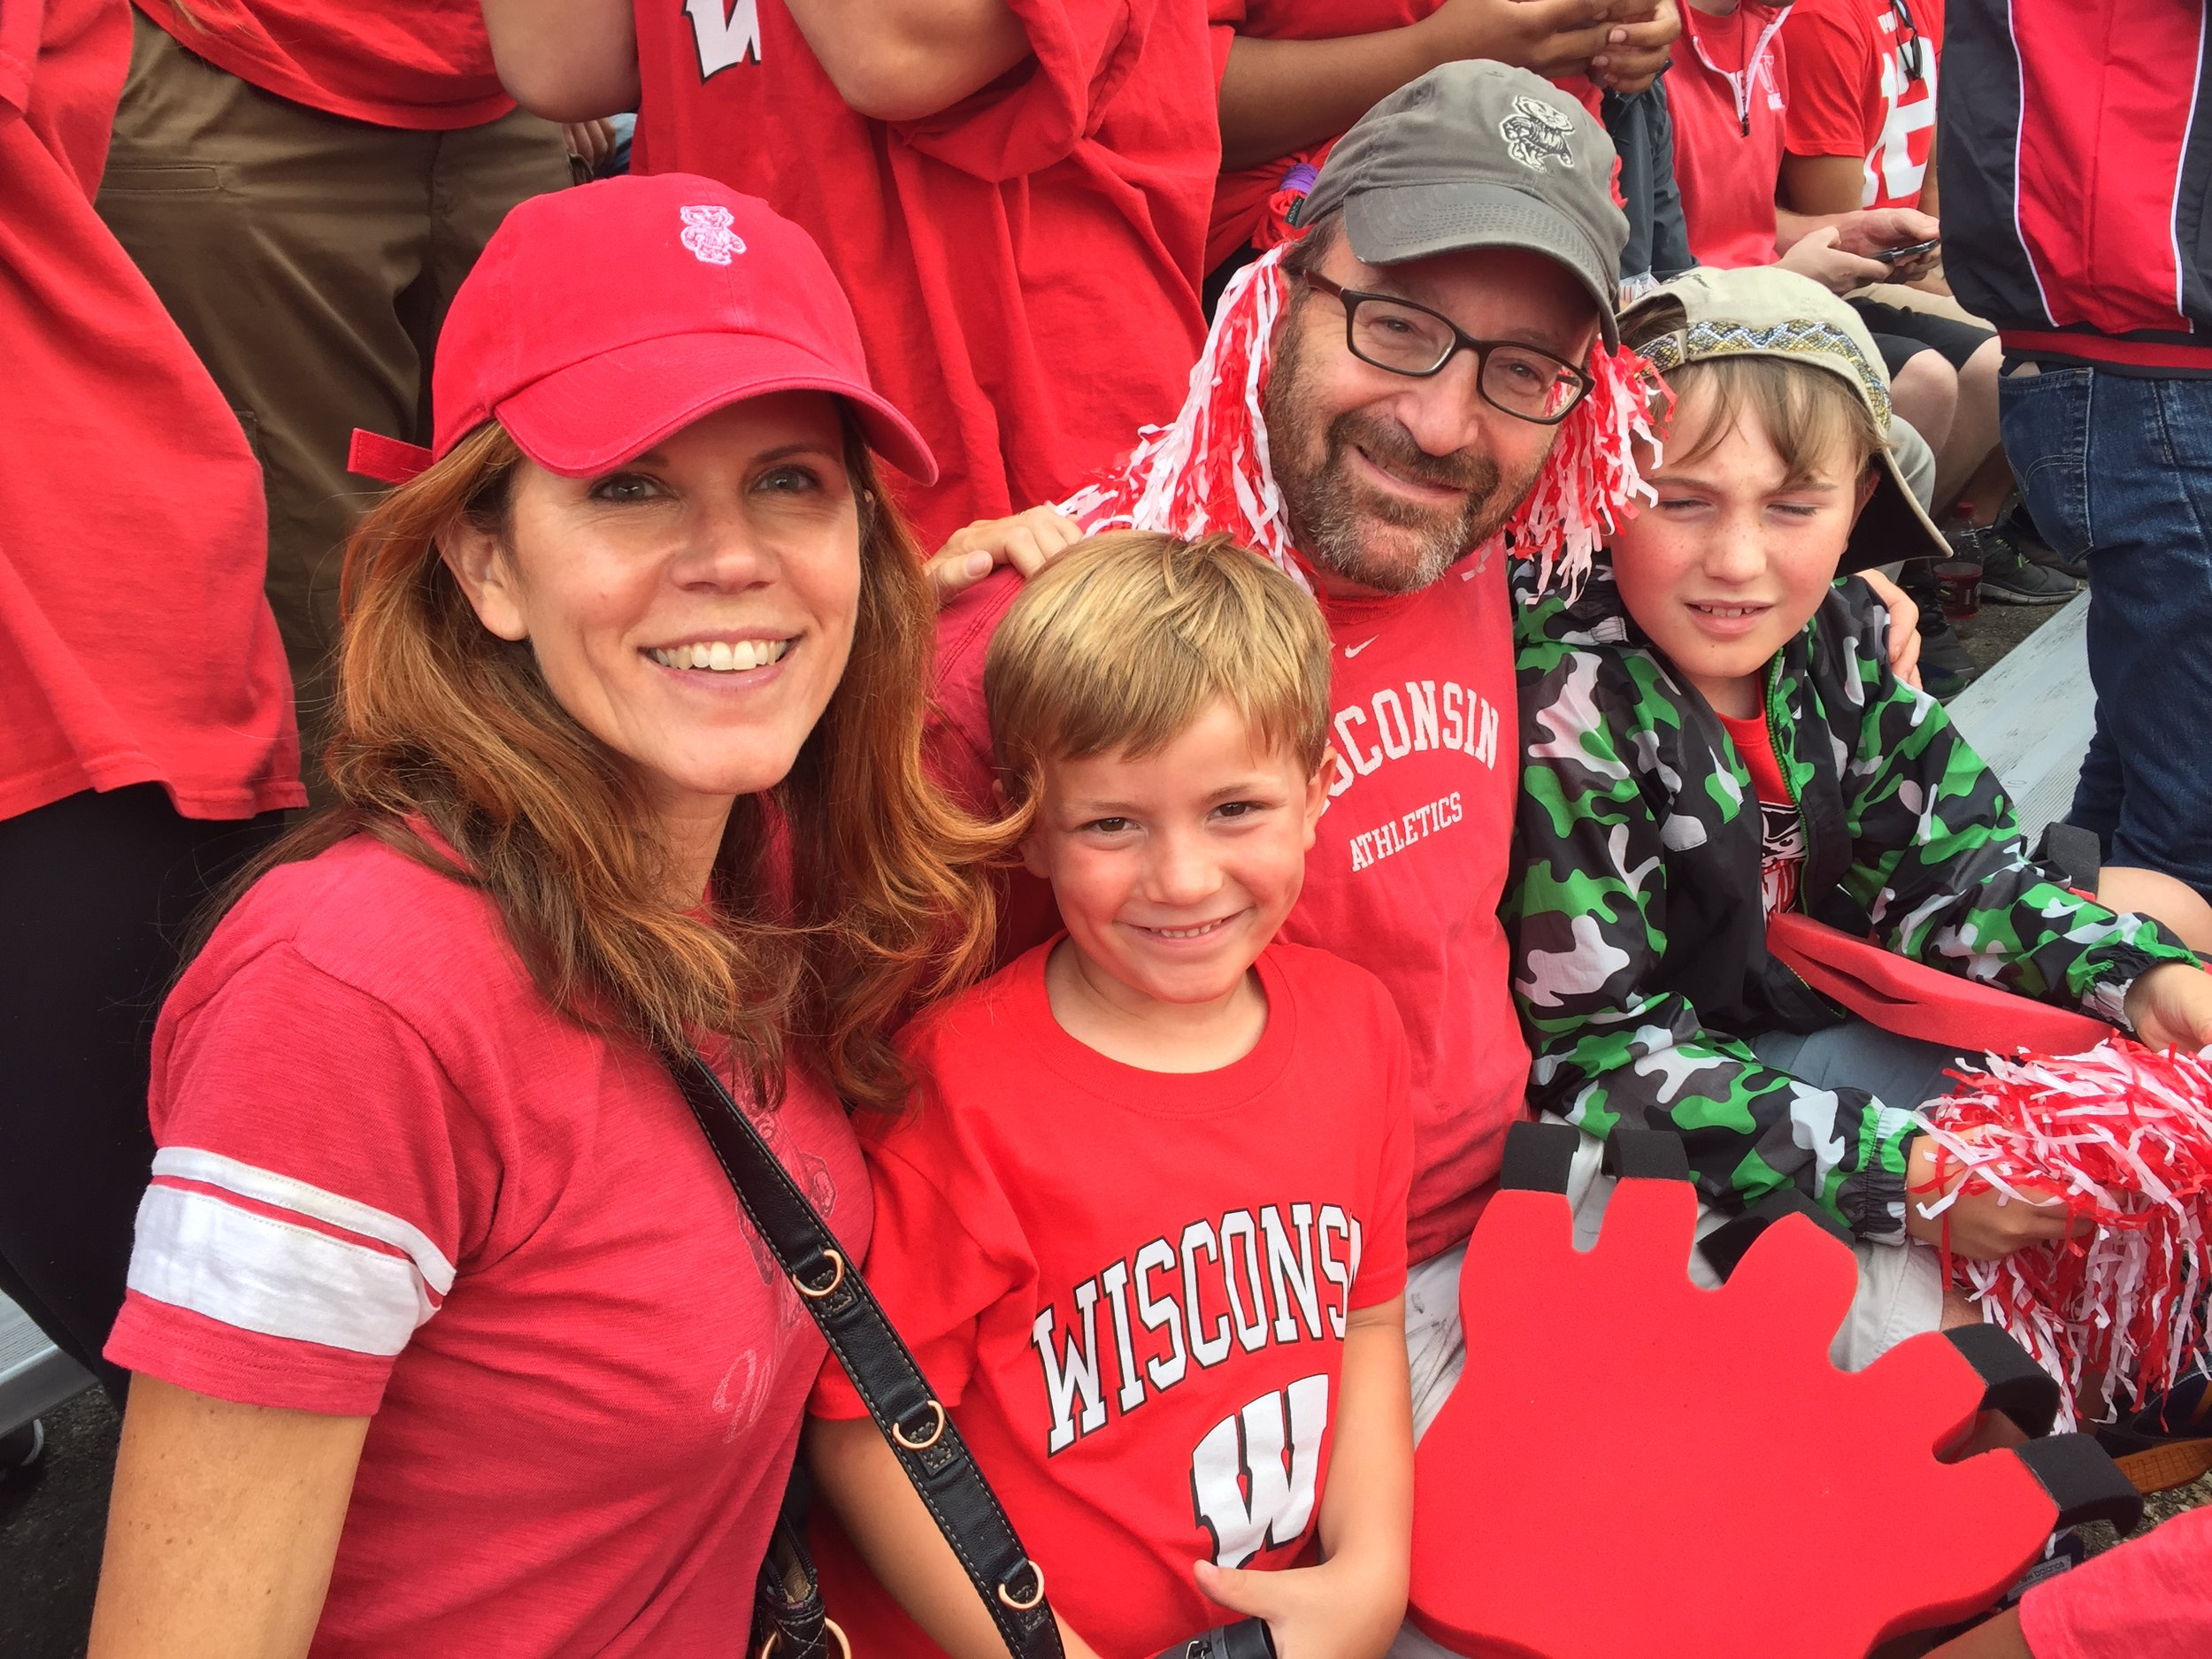 Chris Taylor and her family at a UW-Madison football game.